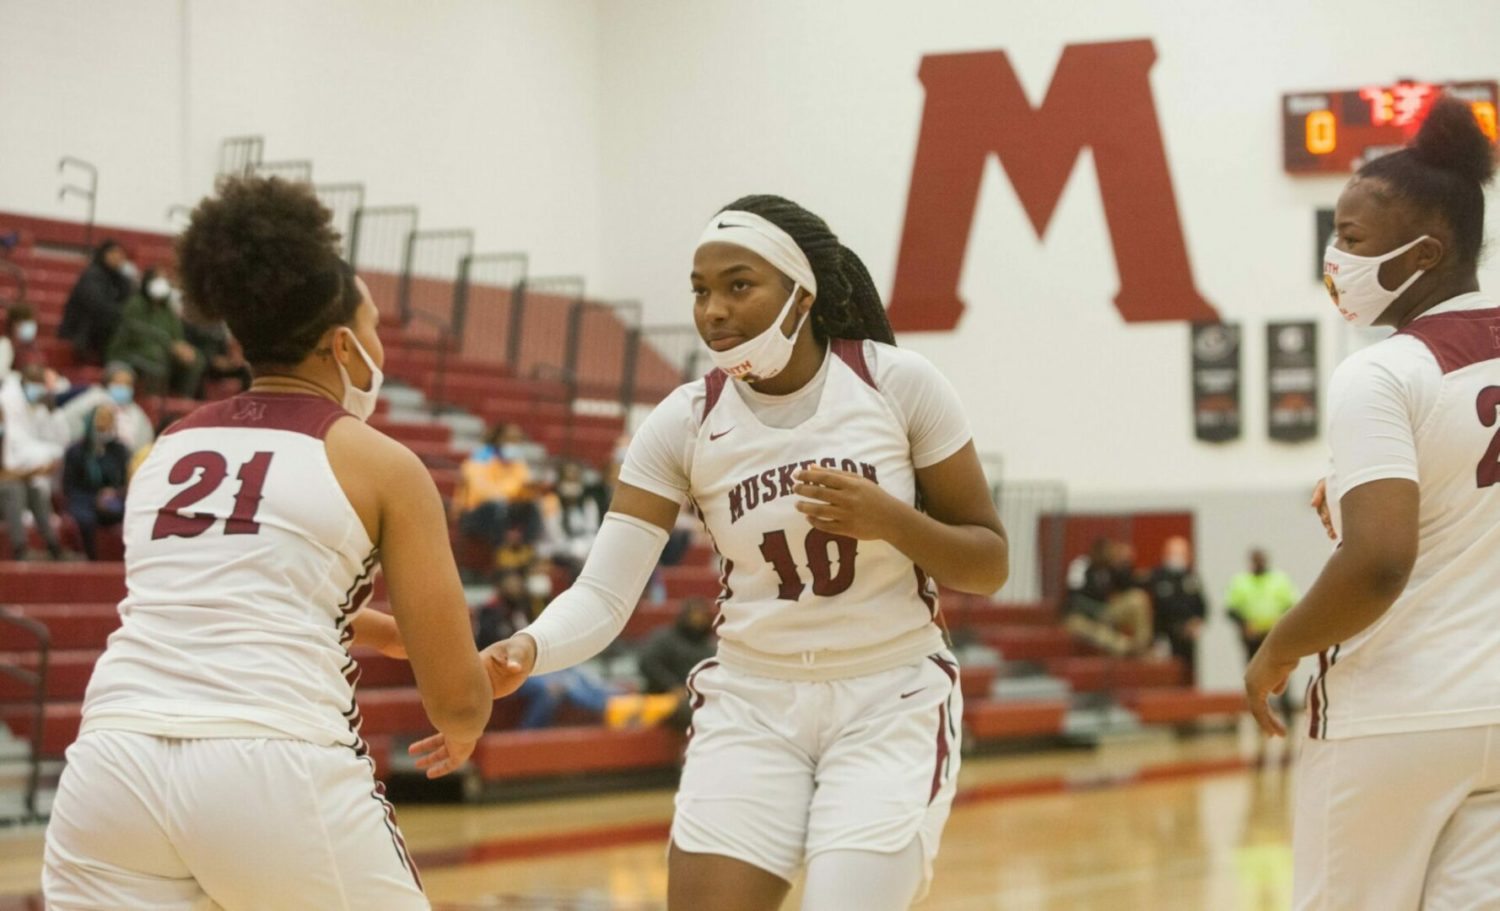 After years of playing with talented older teammates, Muskegon's Kailyn Nash is the Big Reds' go-to girl this season